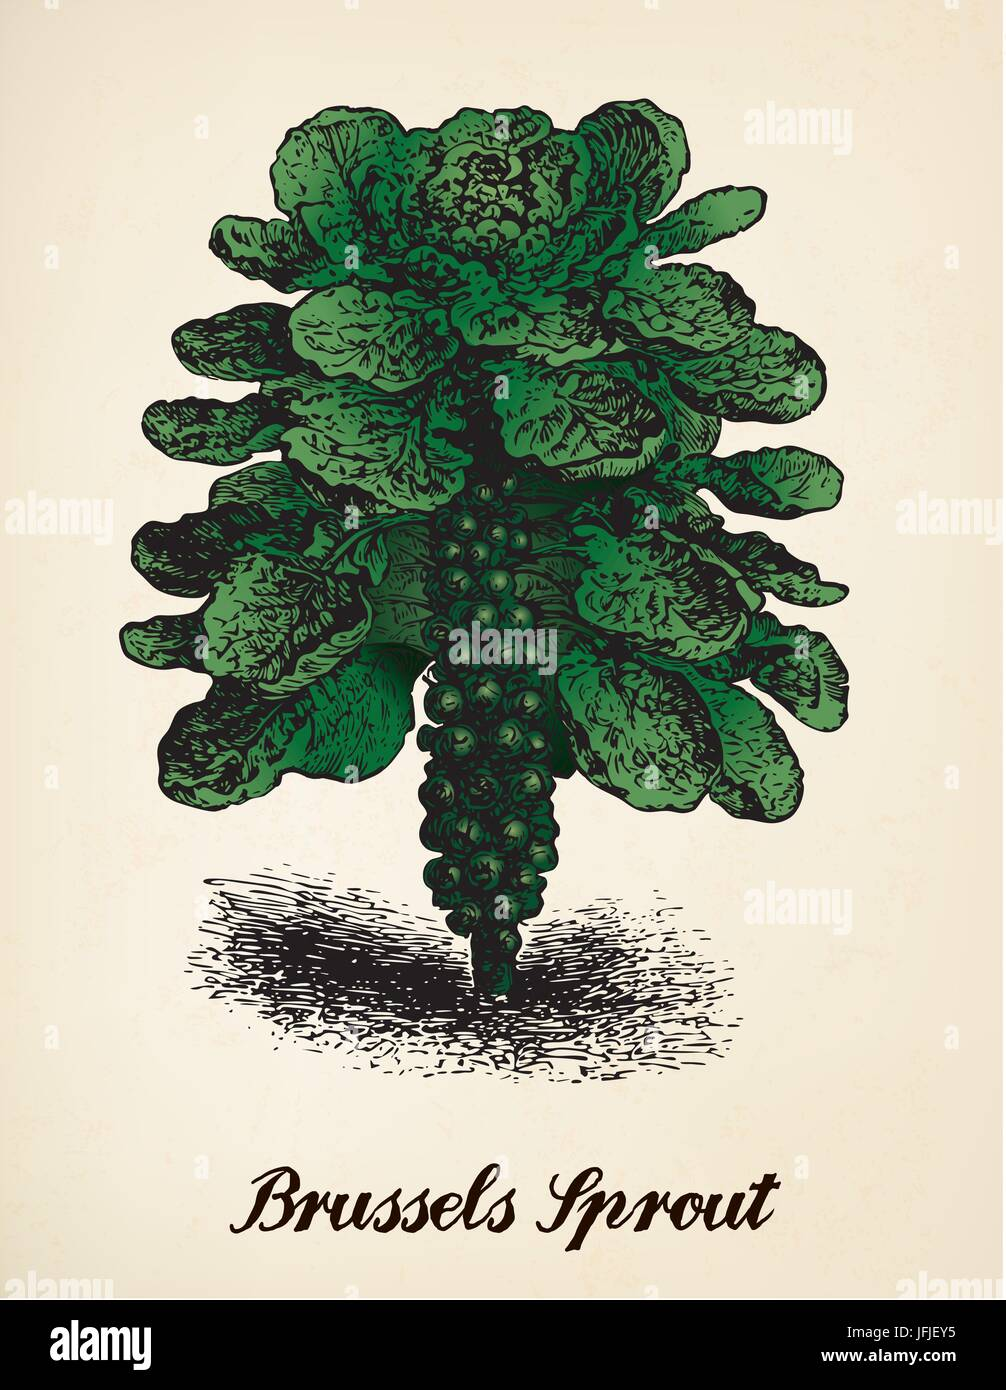 Brussels Sprout vector illustration after vintage engraving from Brockhaus' Konversations-Lexikon, 14th edition, - Stock Image